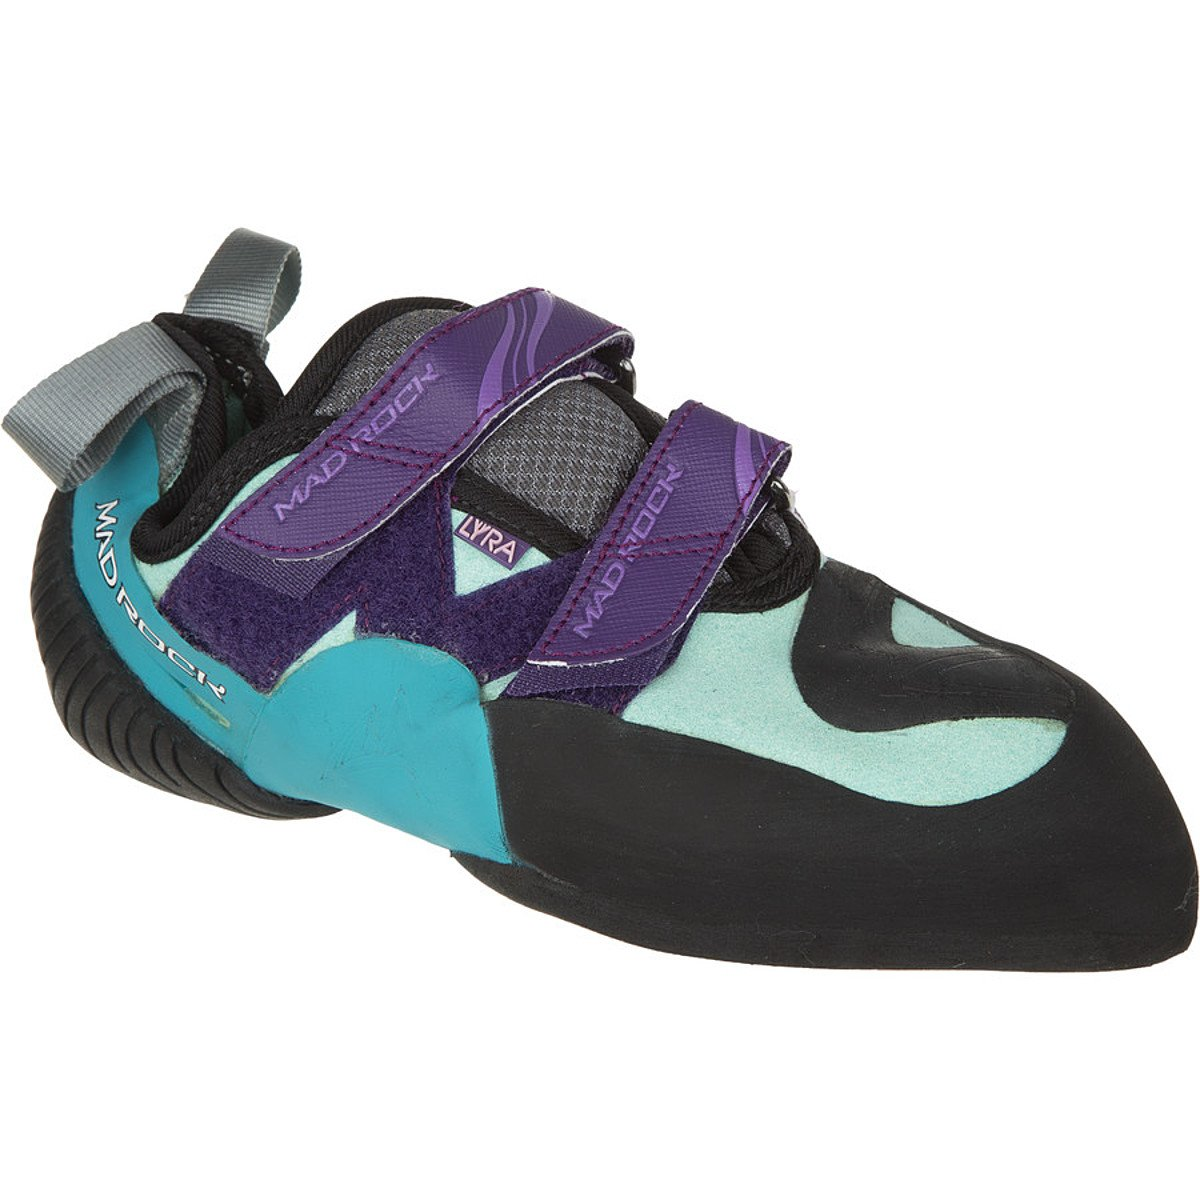 Mad Rock Lyra Climbing Shoes - Women's B00L8BVF5Y 4 D(M) US|Black/Purple/Turquiose